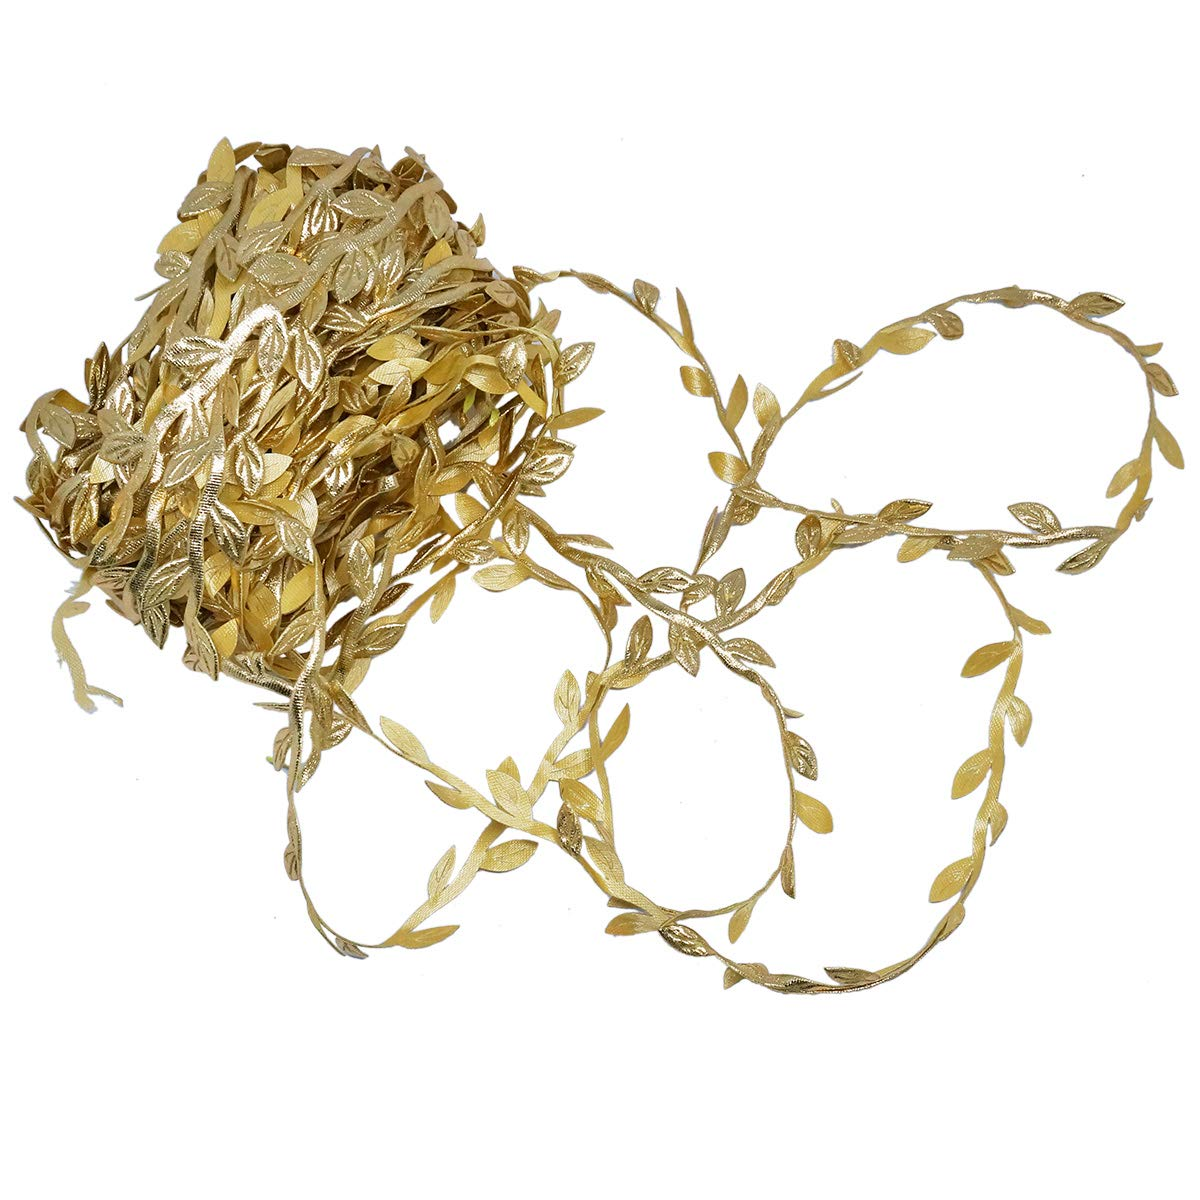 21.8 Yards Golden Leaf Trim Leaves Ribbon Metallic Trim Wedding Hair Band Making ,GOLD Leaves Ribbon Trim for Wedding, Crafting, Scrapbooking, Card Making, Embellishment Christmas wreath Party Garlands Supply Golden Leaf Leaves